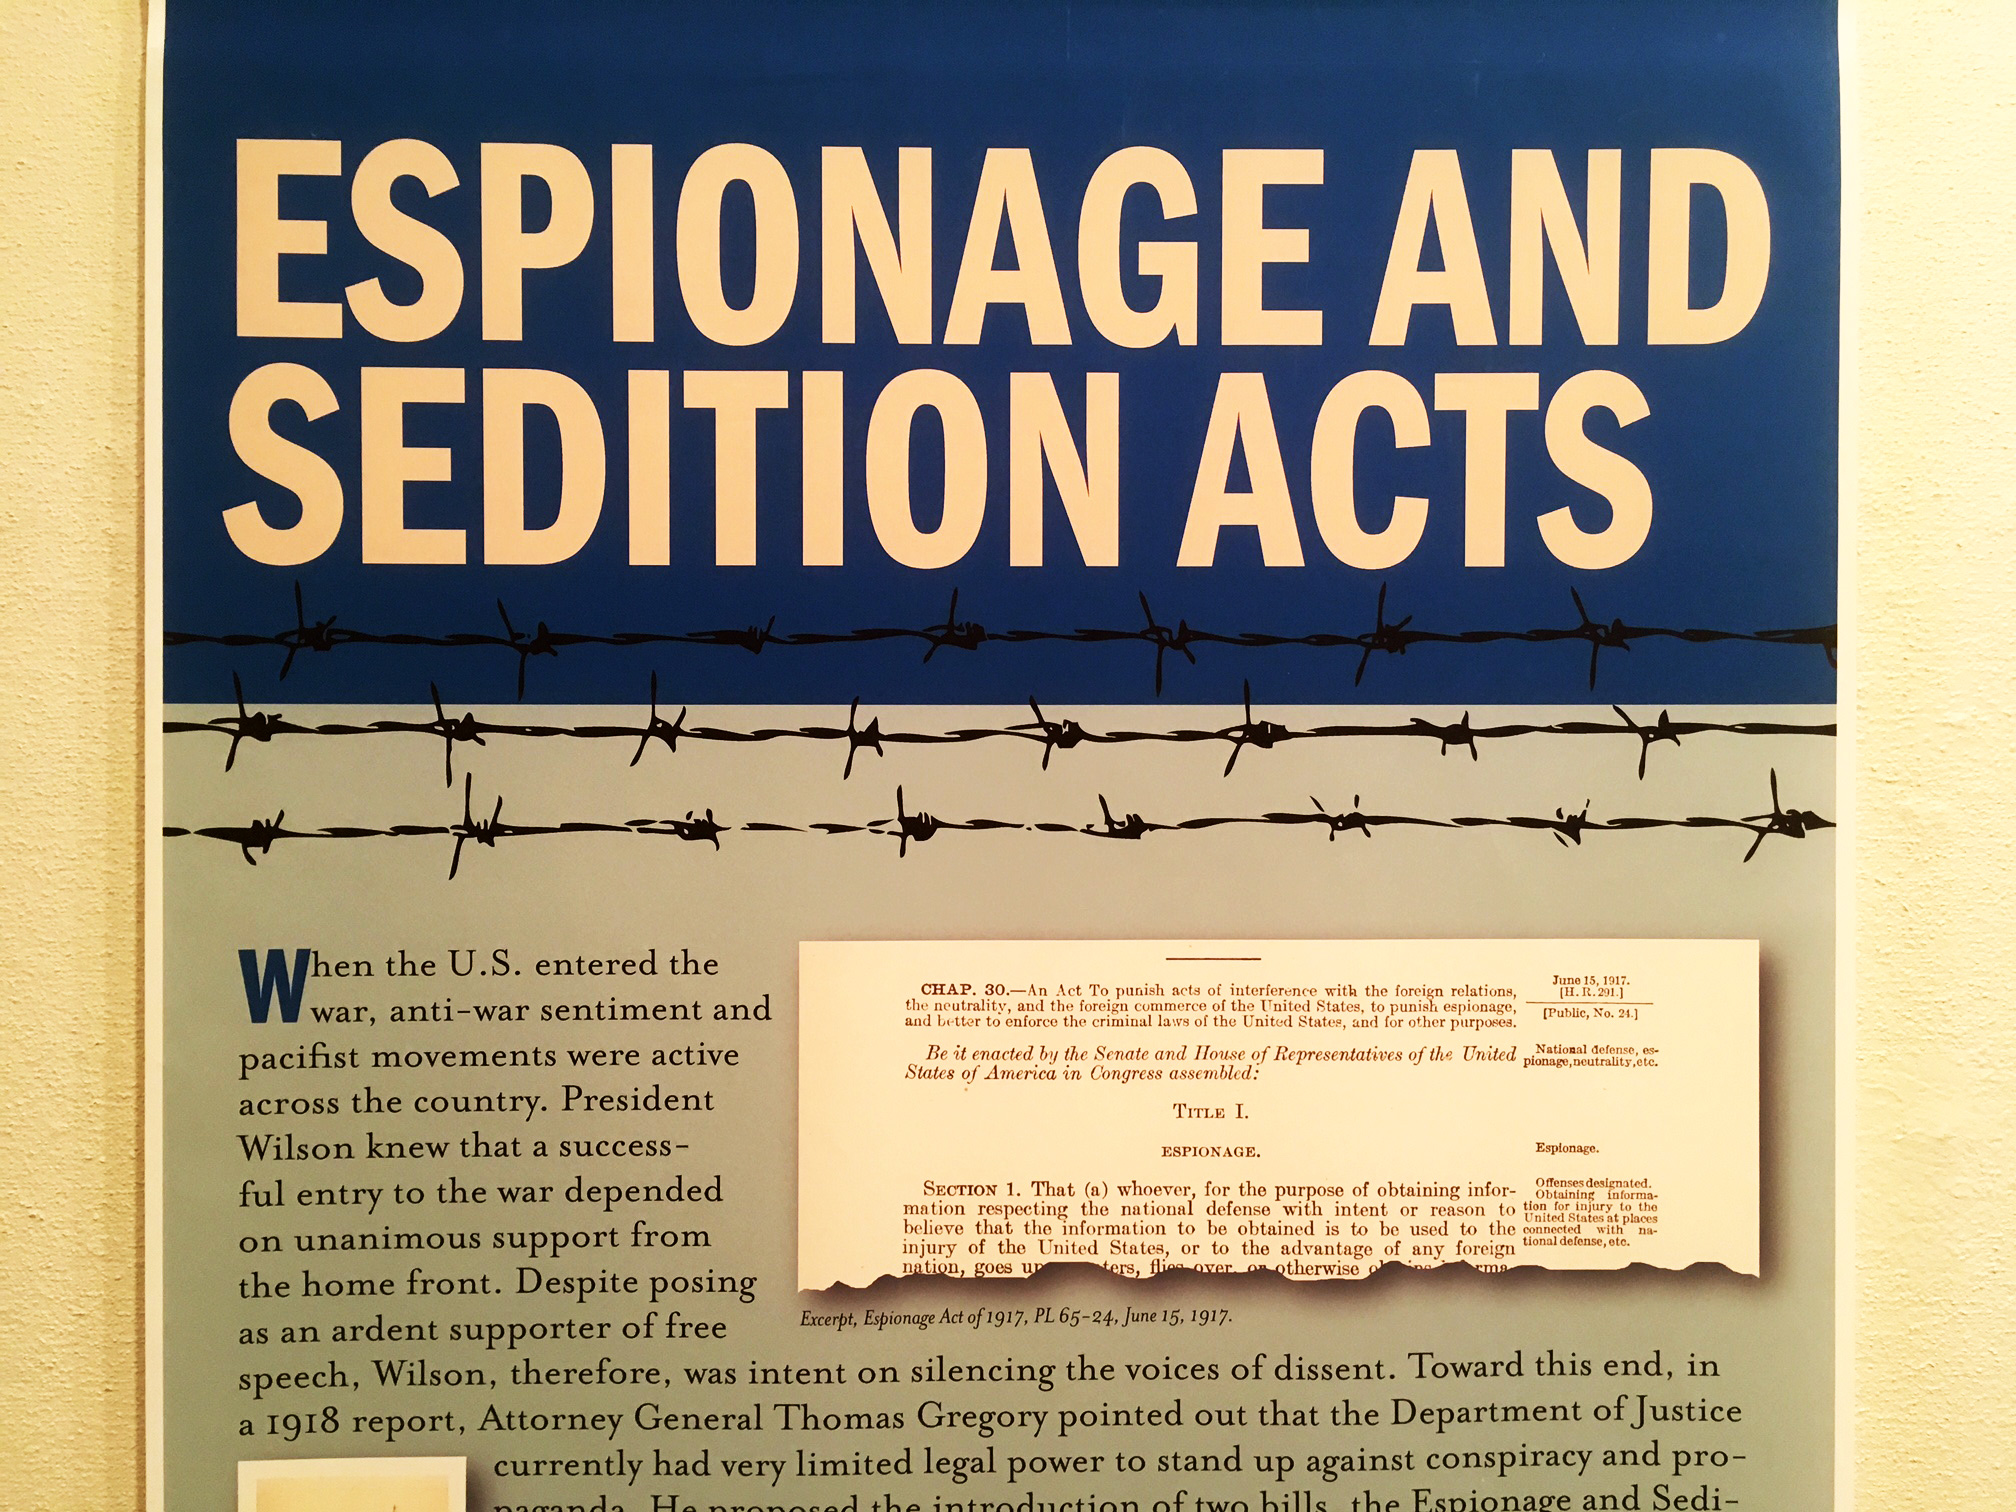 A panel examining the Espionage and Sedition Acts enacted during World War I.